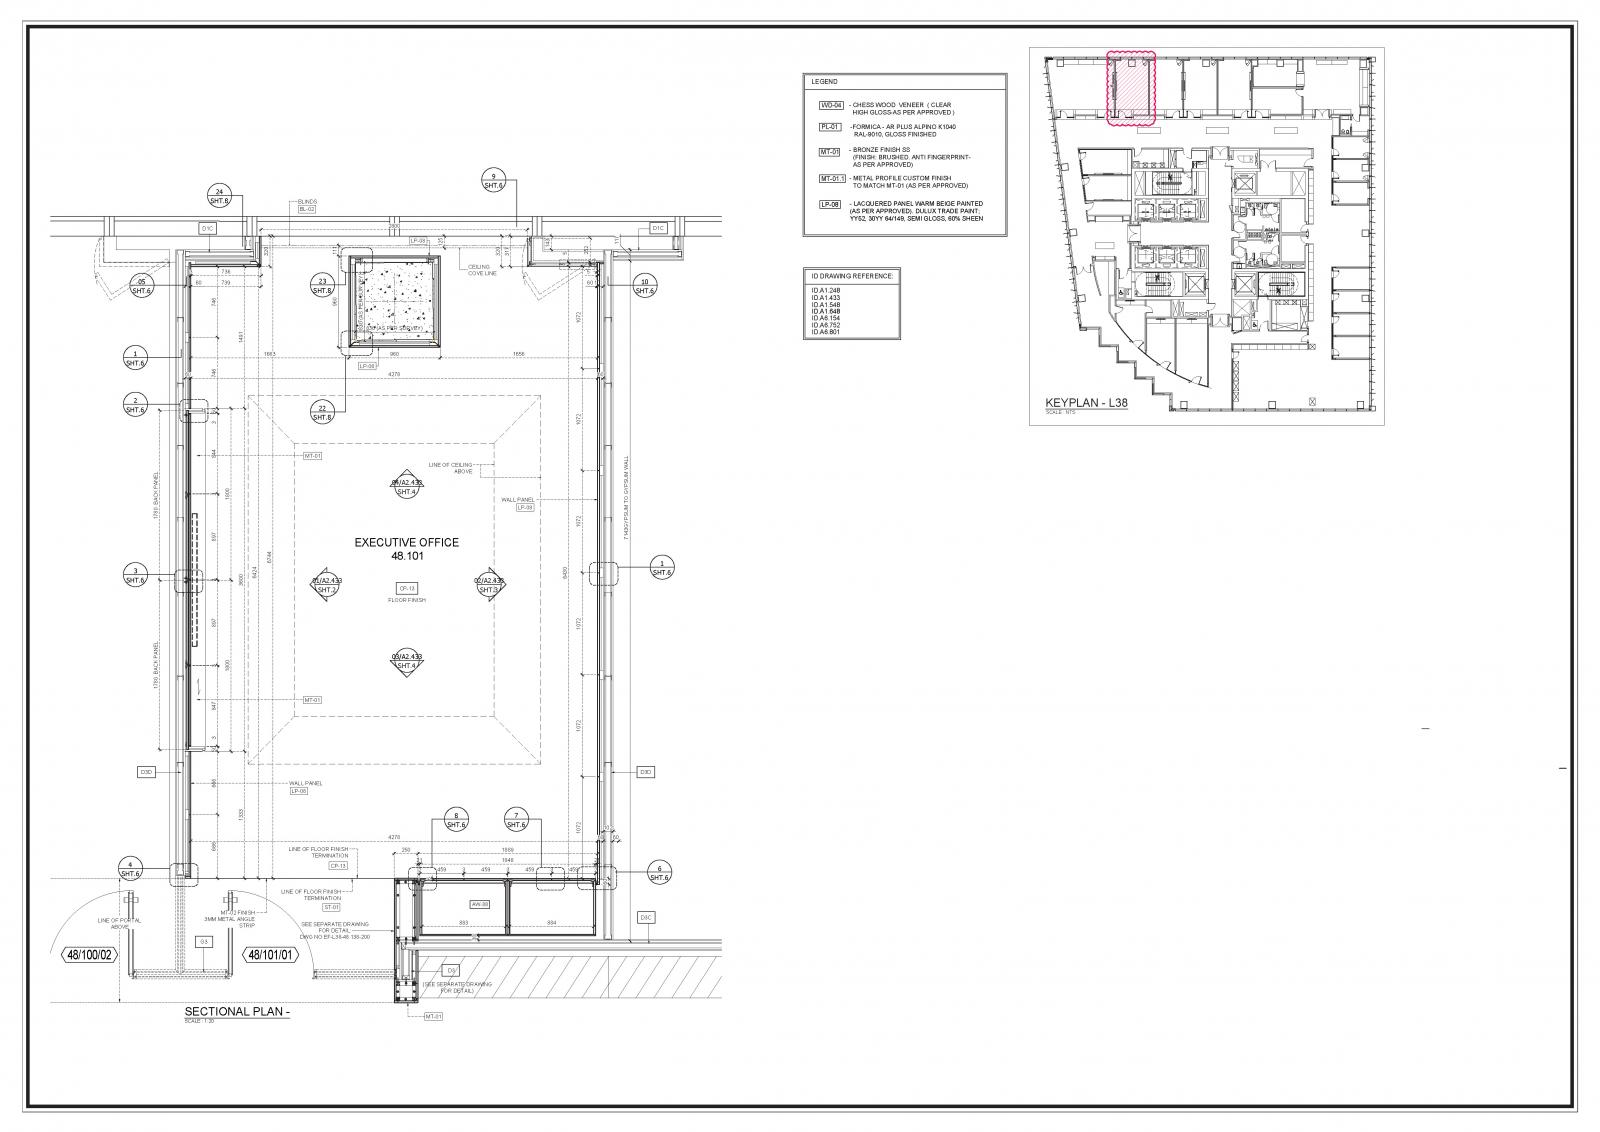 Millwork Shop Drawings for Bespoke Furniture